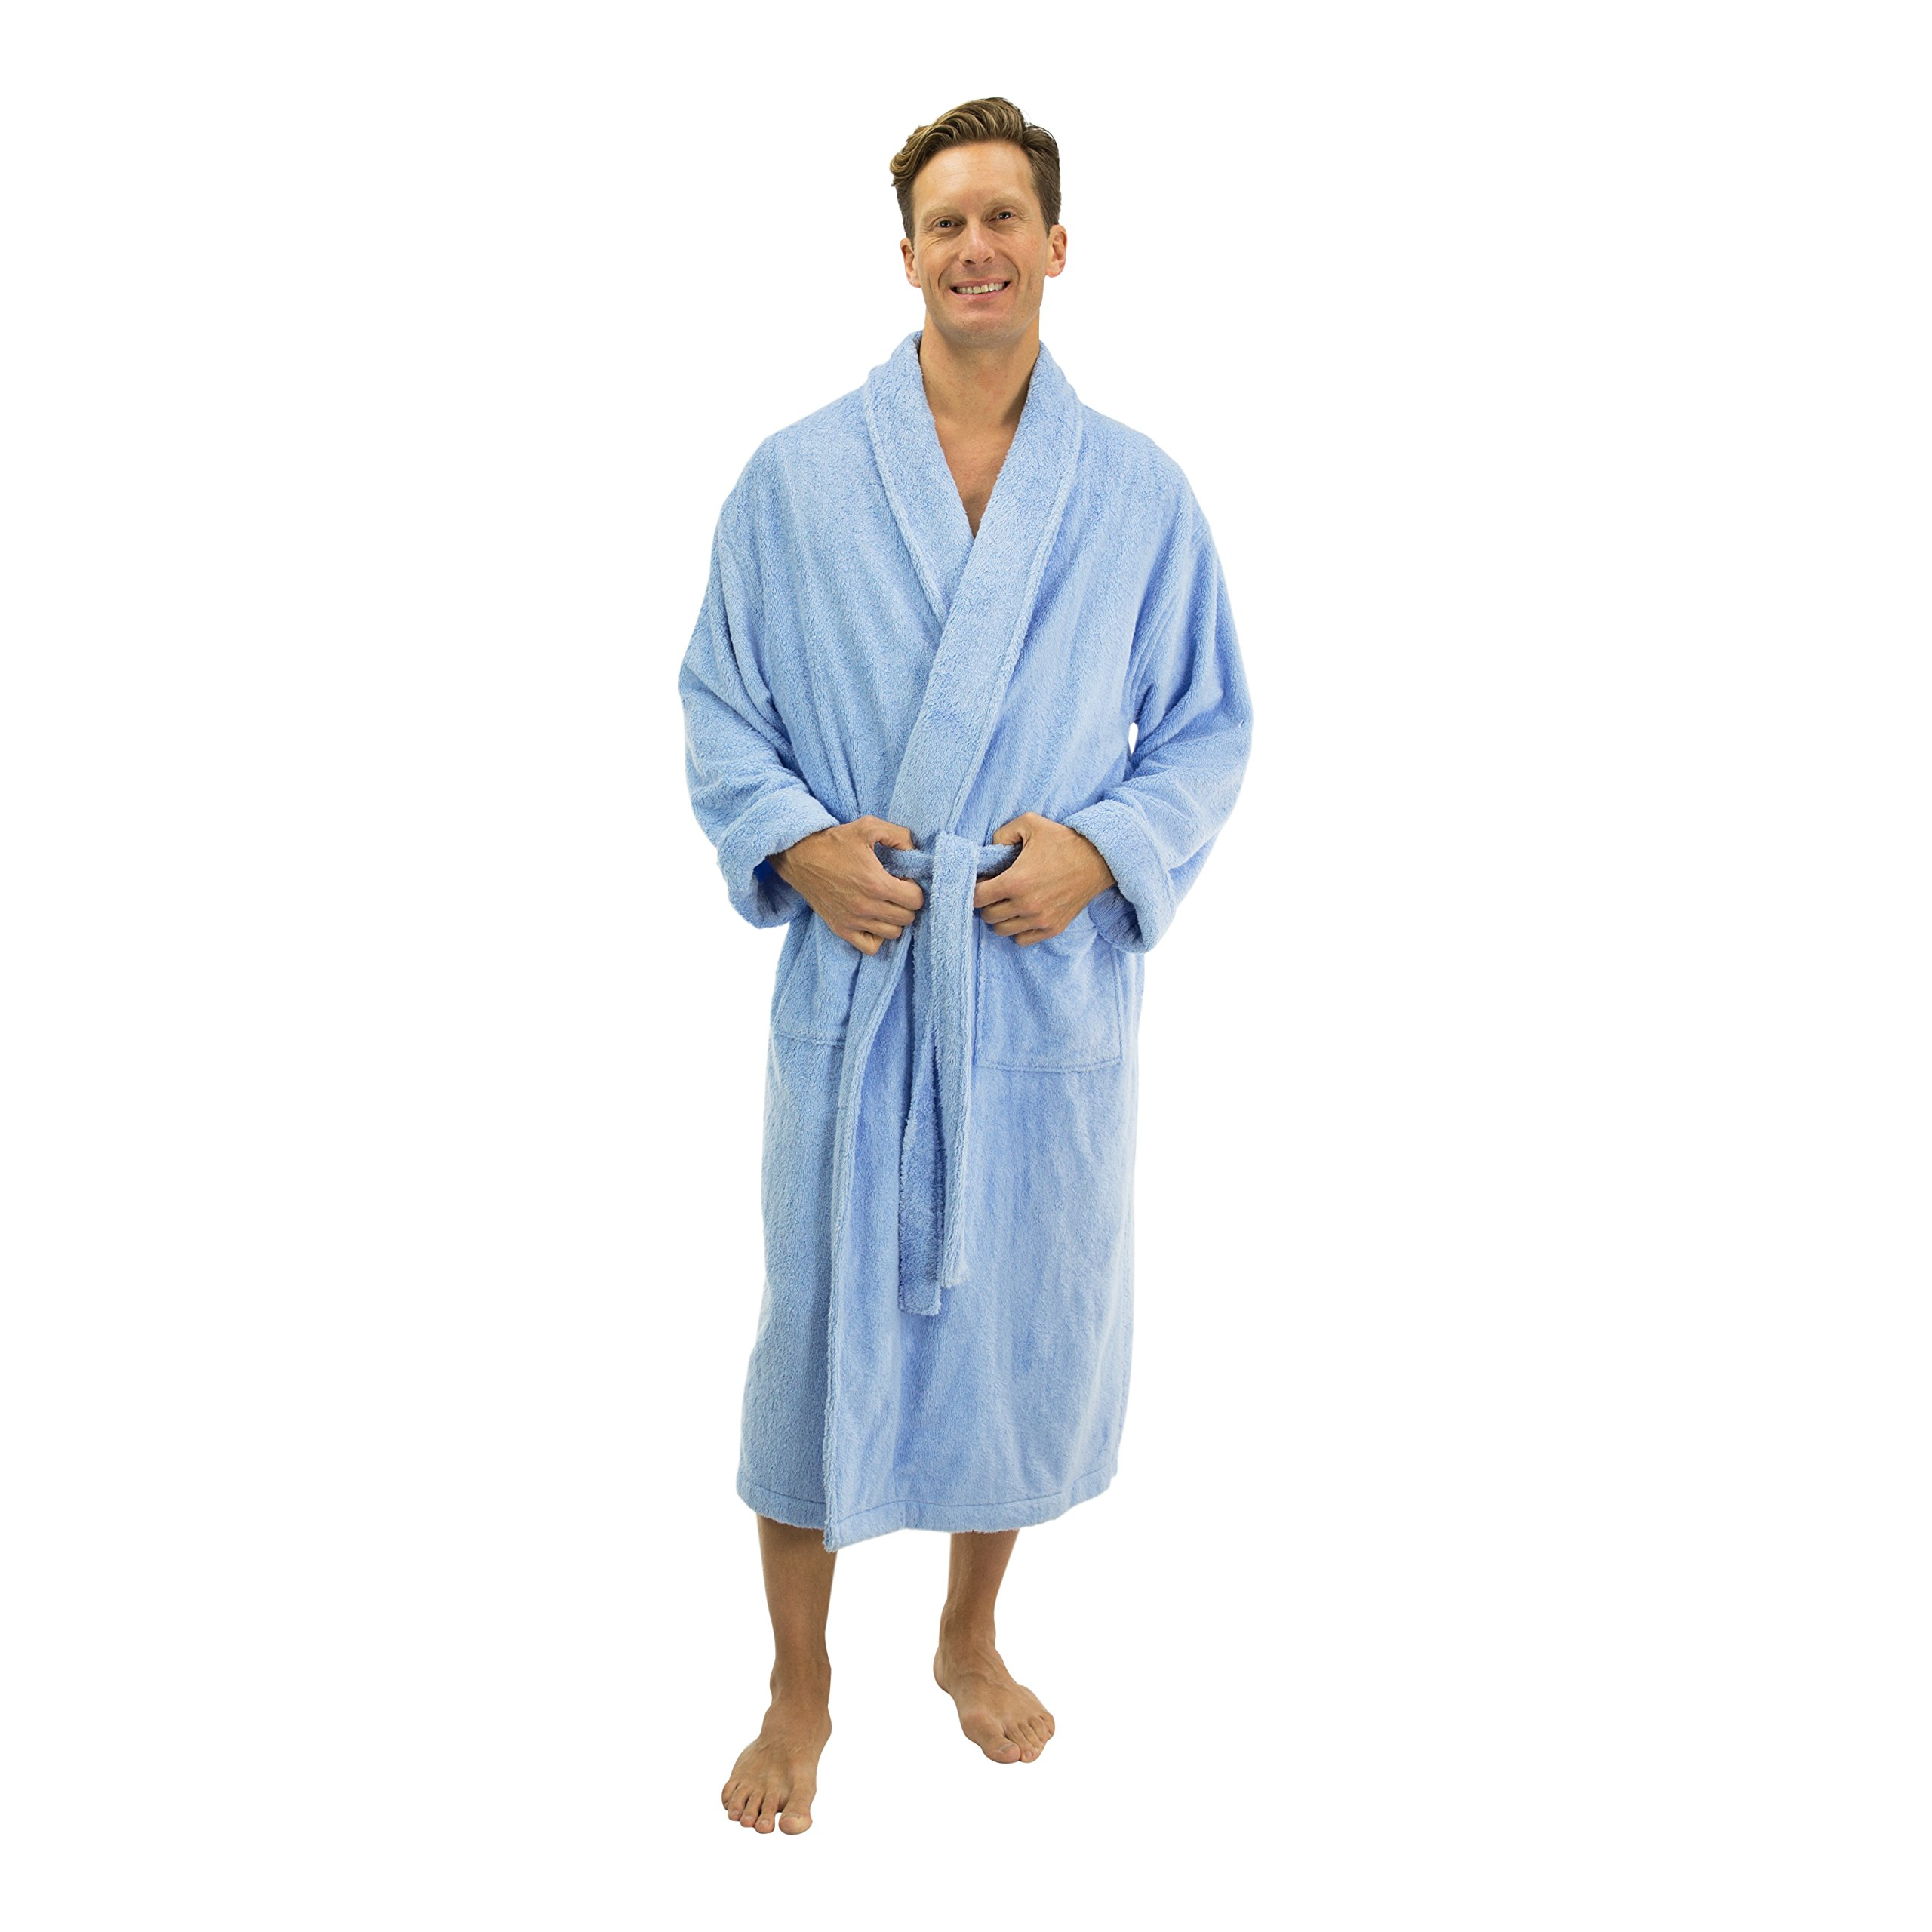 38623bf9d3 Comfy Robes Men s Bamboo Shawl Collar Robe